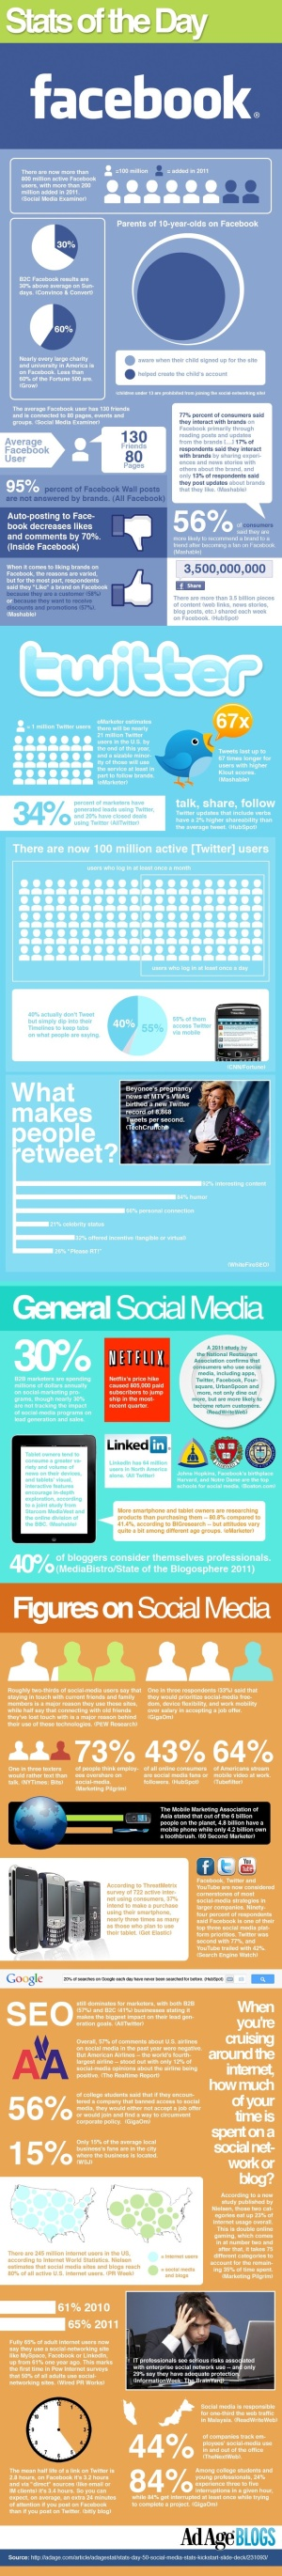 Social media - Stats of the Day